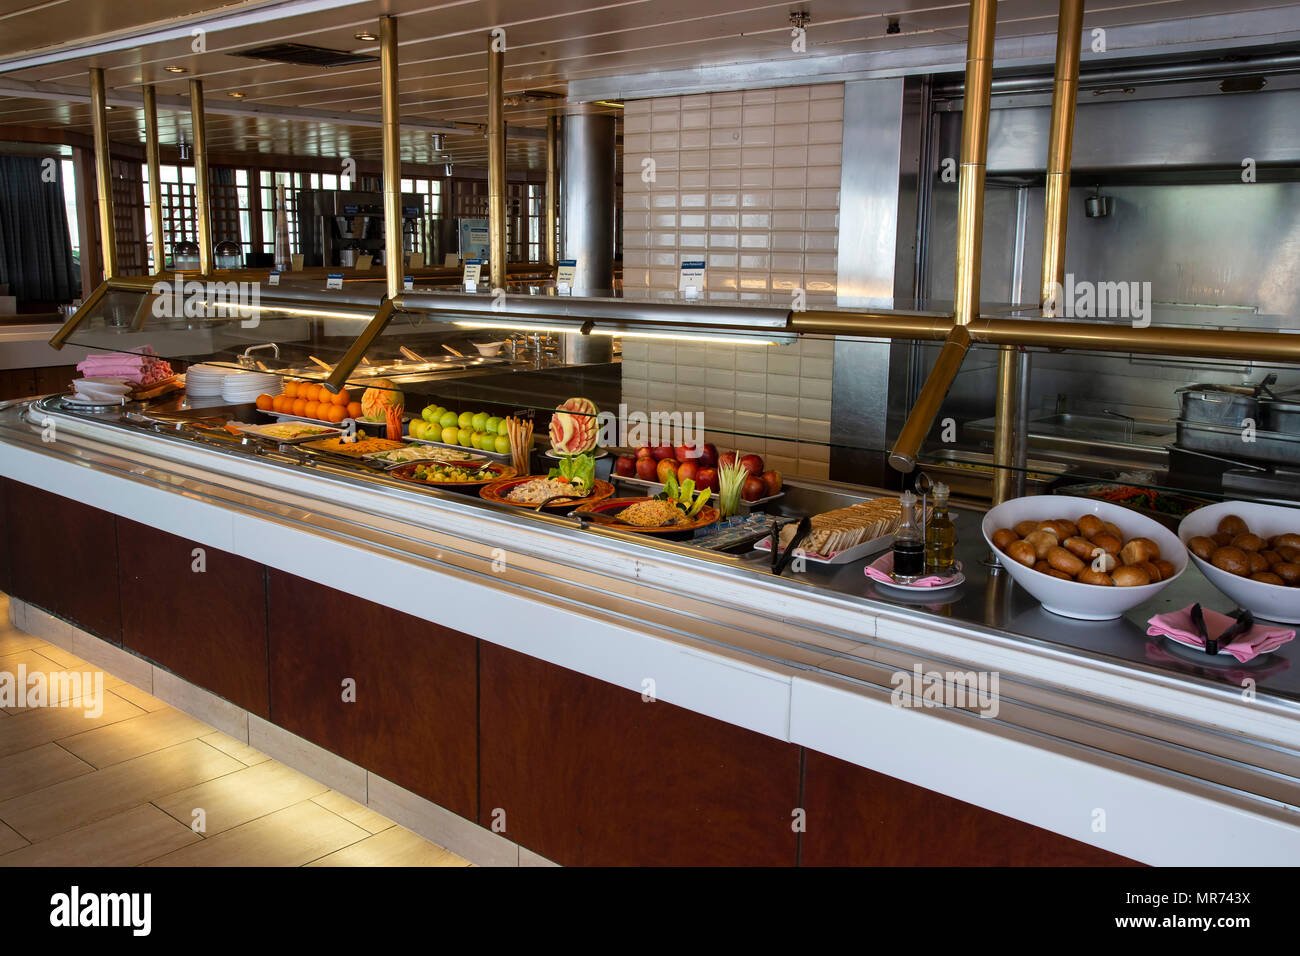 Self service food counter on cruise liner showing assortment of food - Stock Image